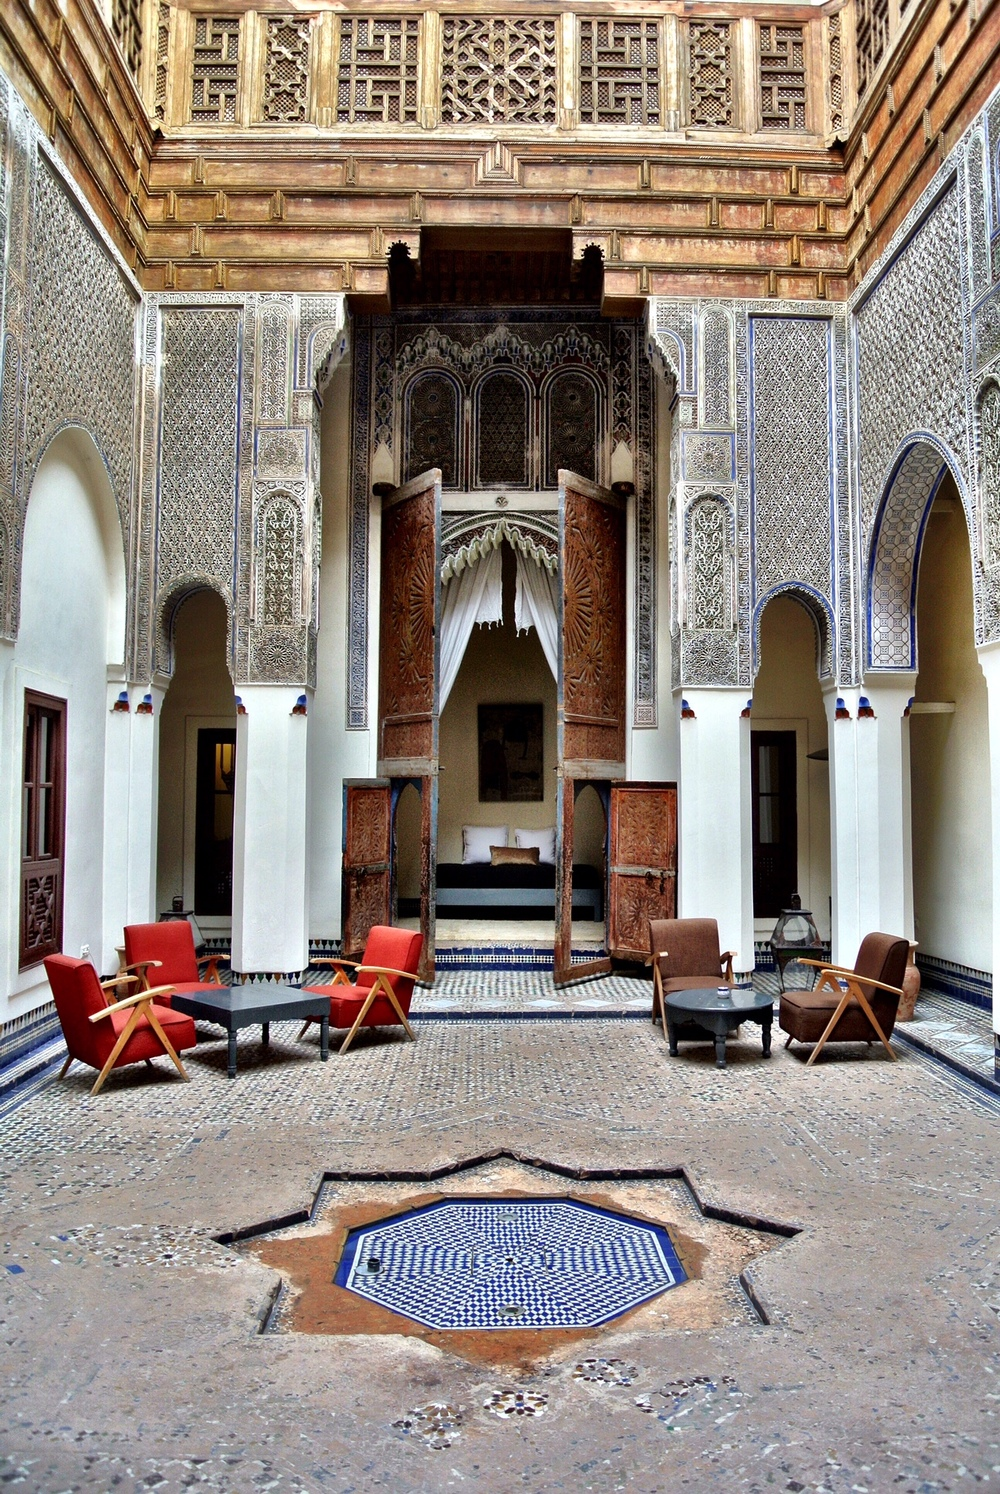 The stunning interior courtyard of Riad Dar Bensouda in Fès, Morocco